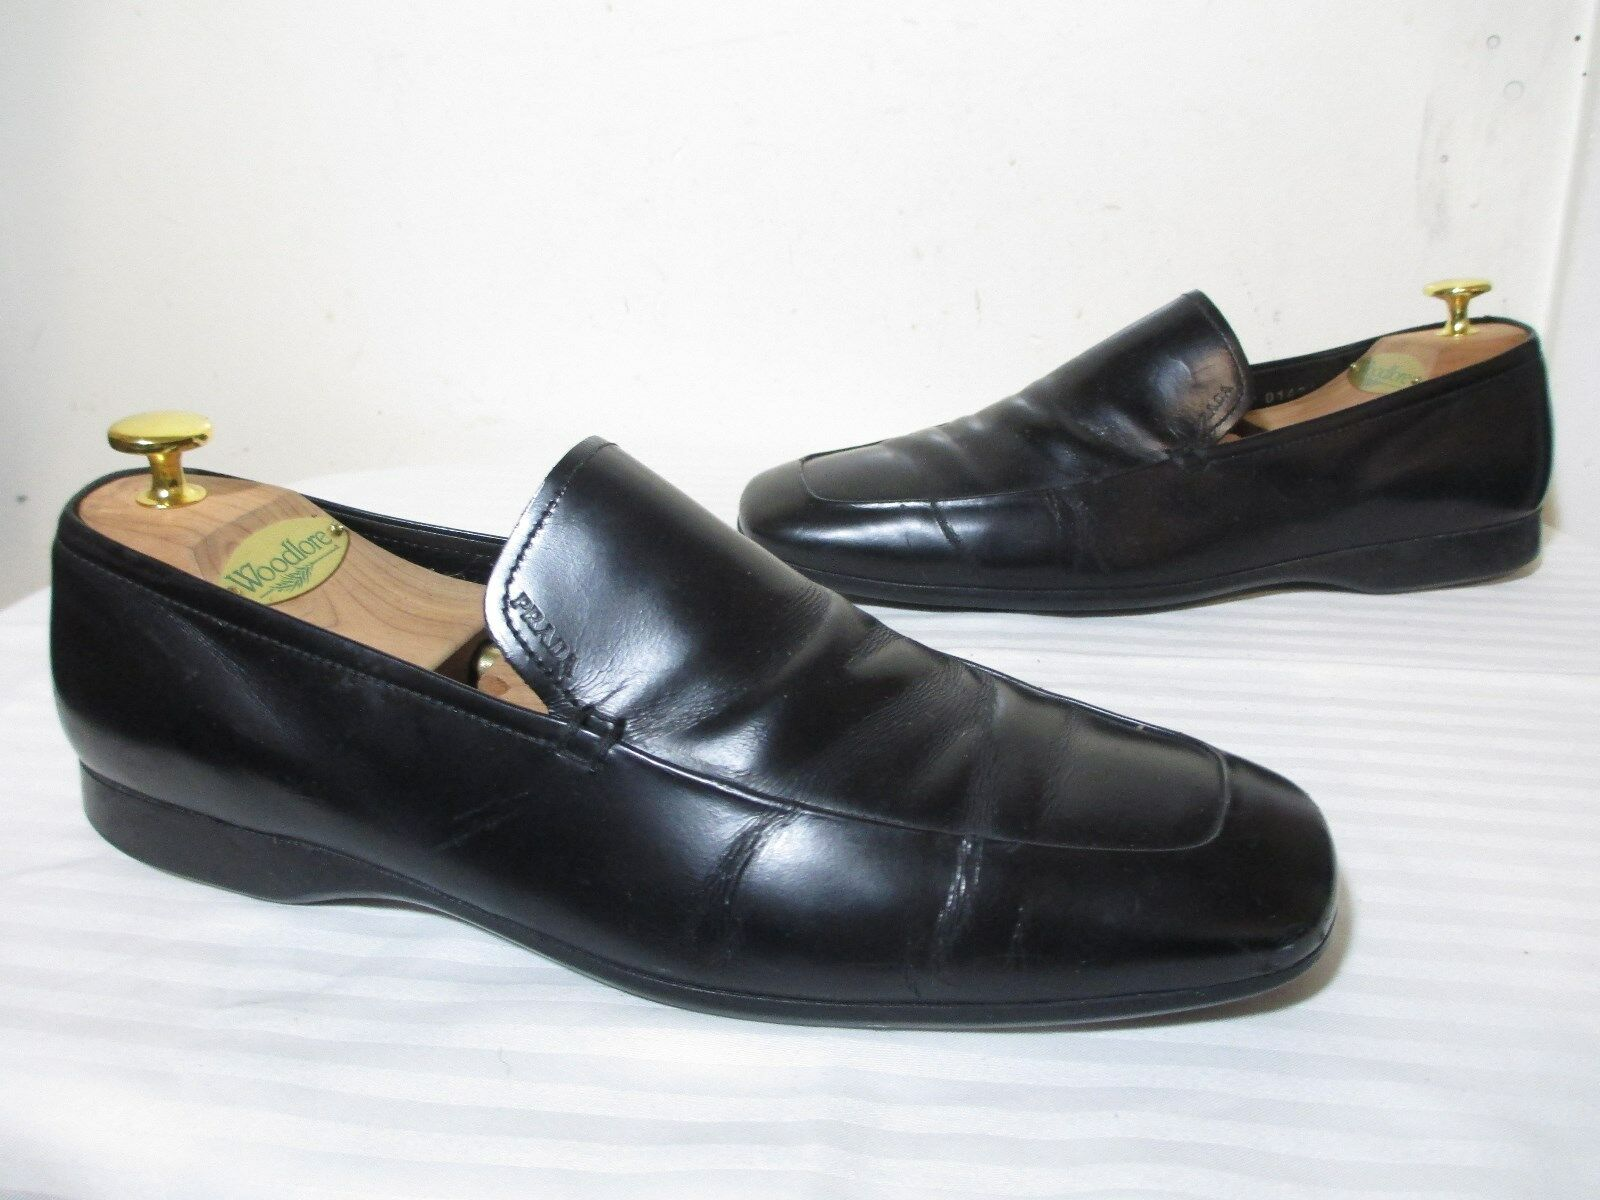 PRADA MEN'S BLACK LEATHER SLIP ON LOAFERS SHOES MARKED SZ 7  US 8 - 9